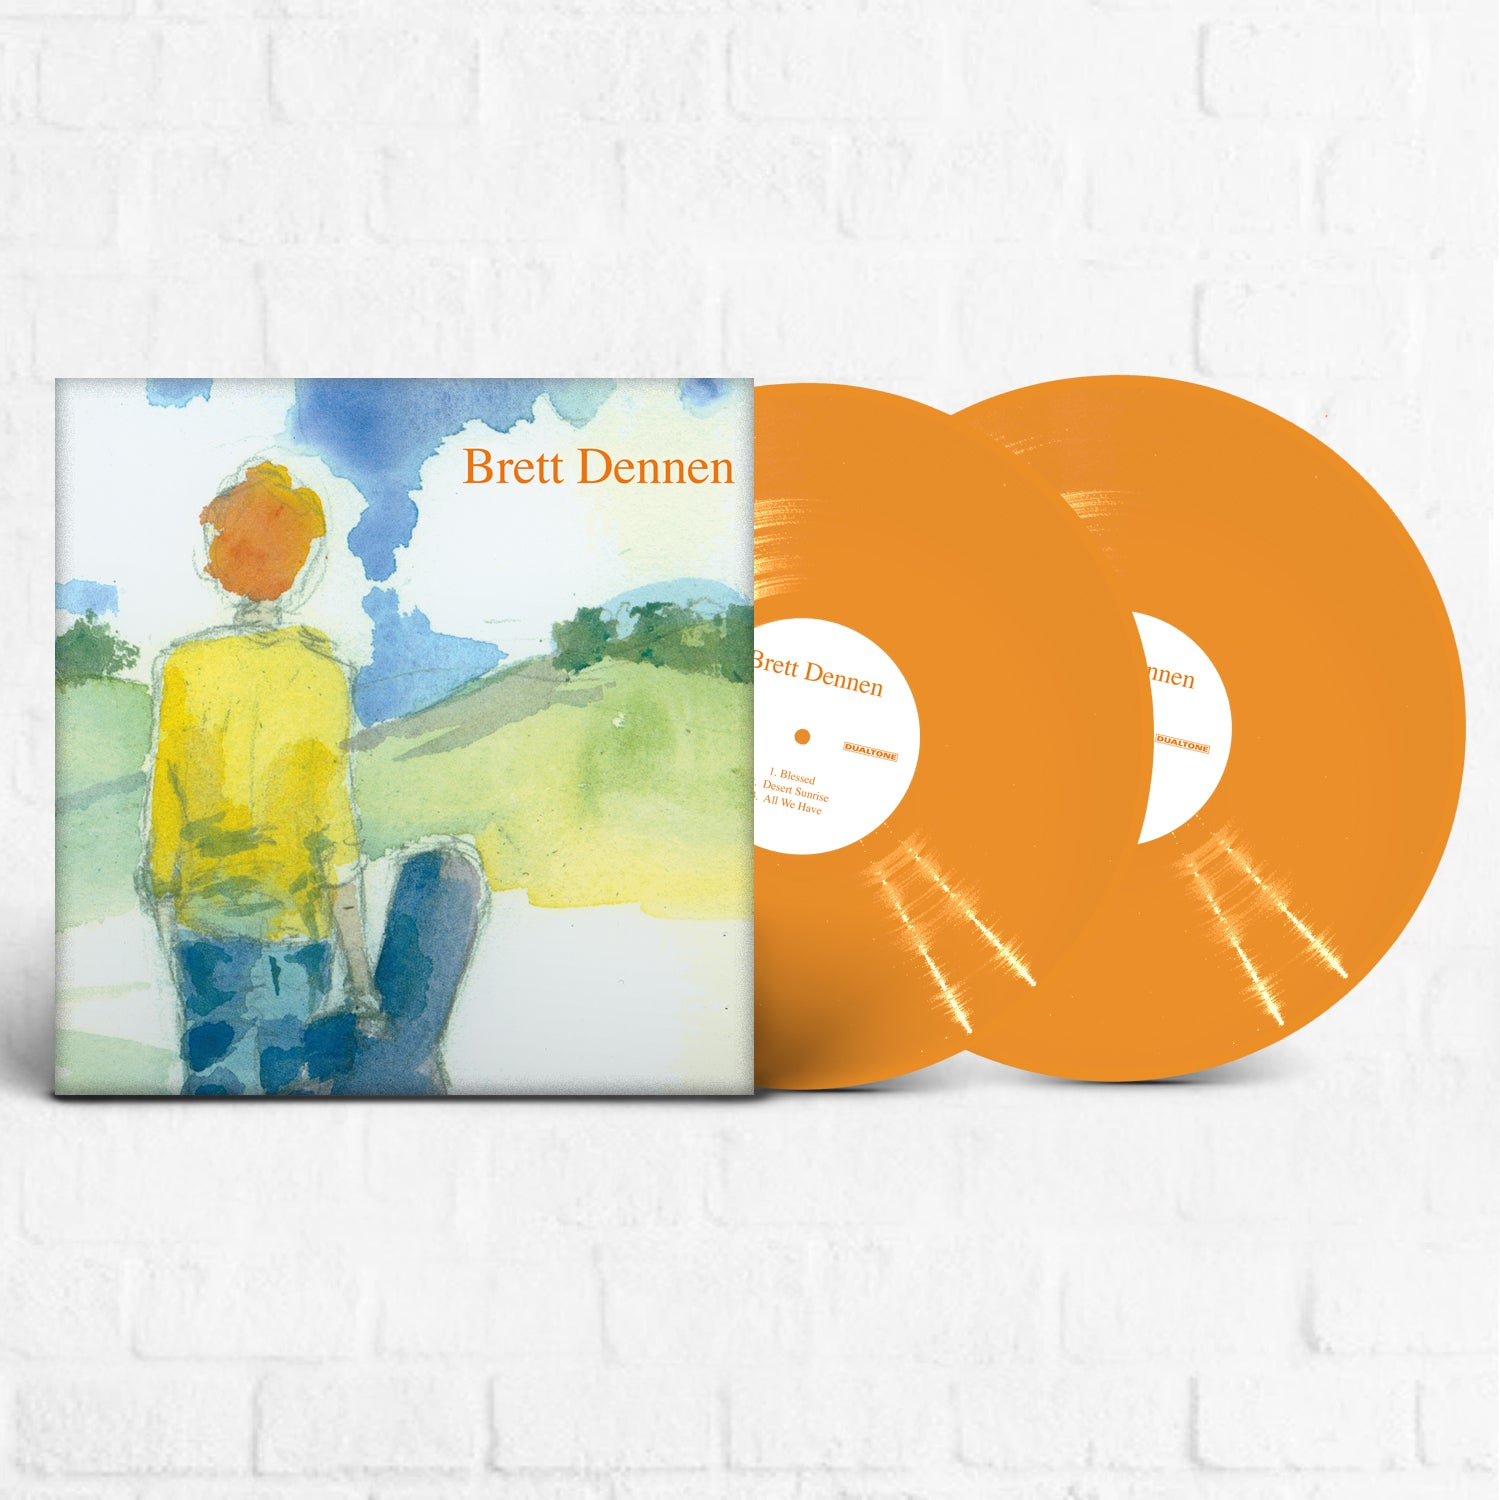 Brett Dennen - Brett Dennen [Limited Edition Orange]